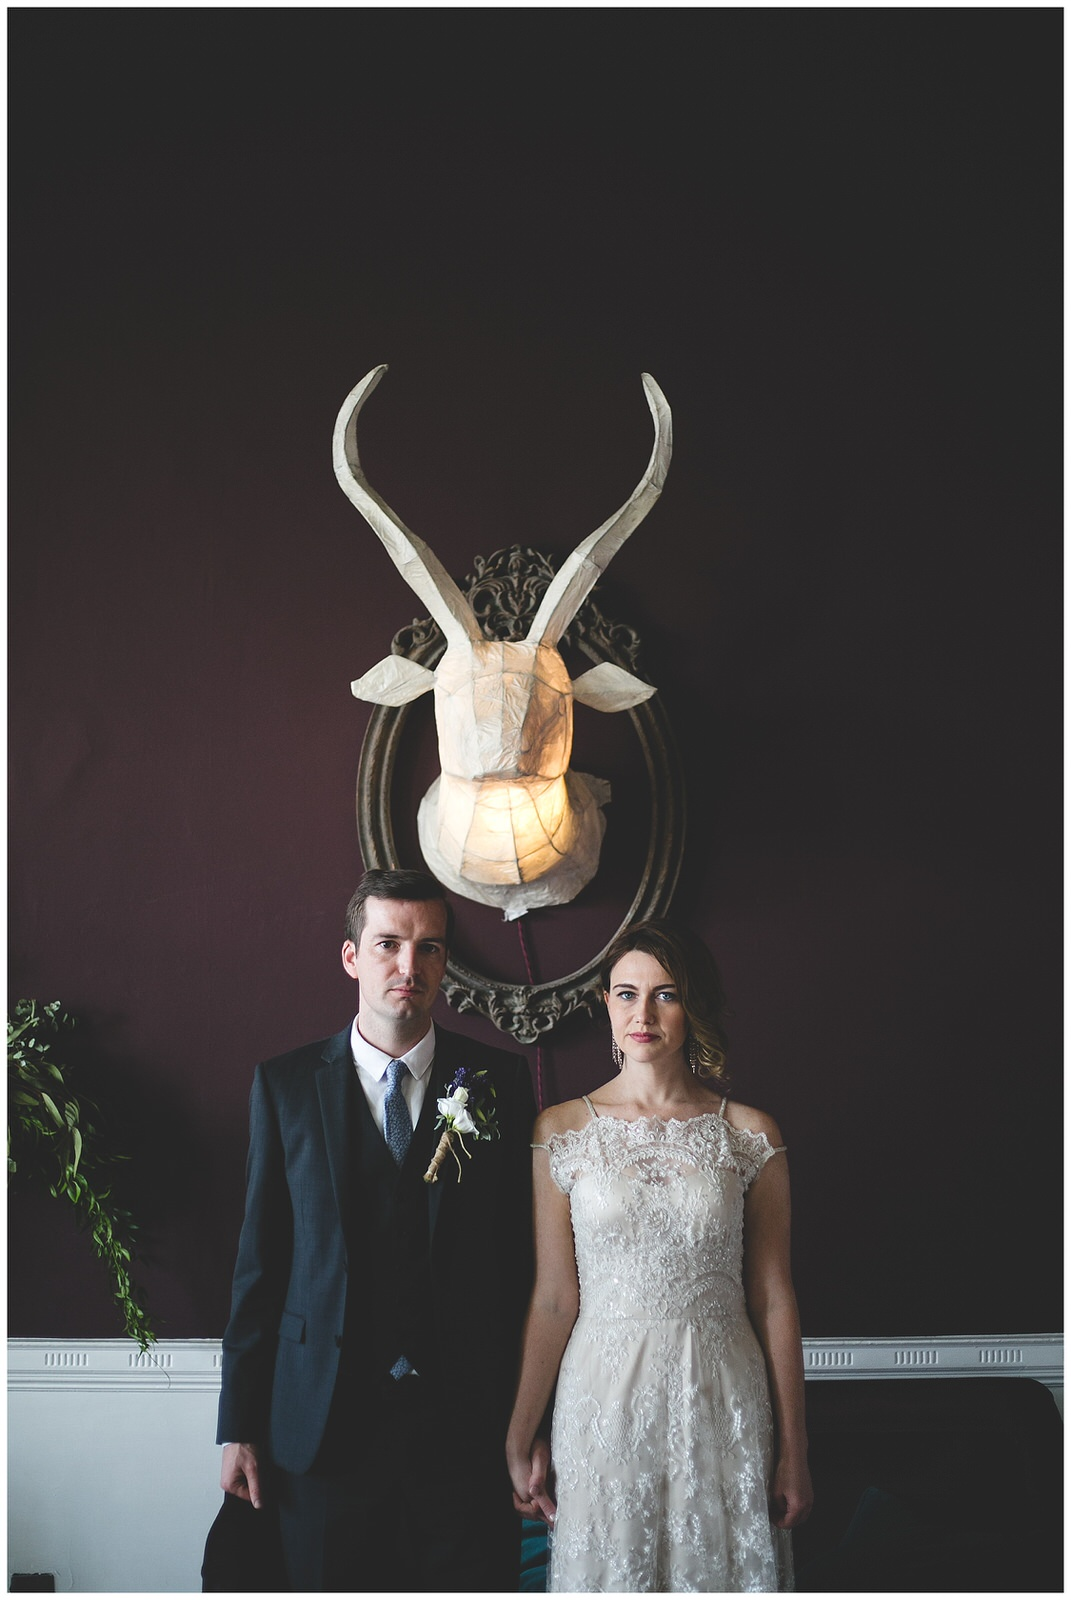 Wild things wed photography - Bellinter House Wedding